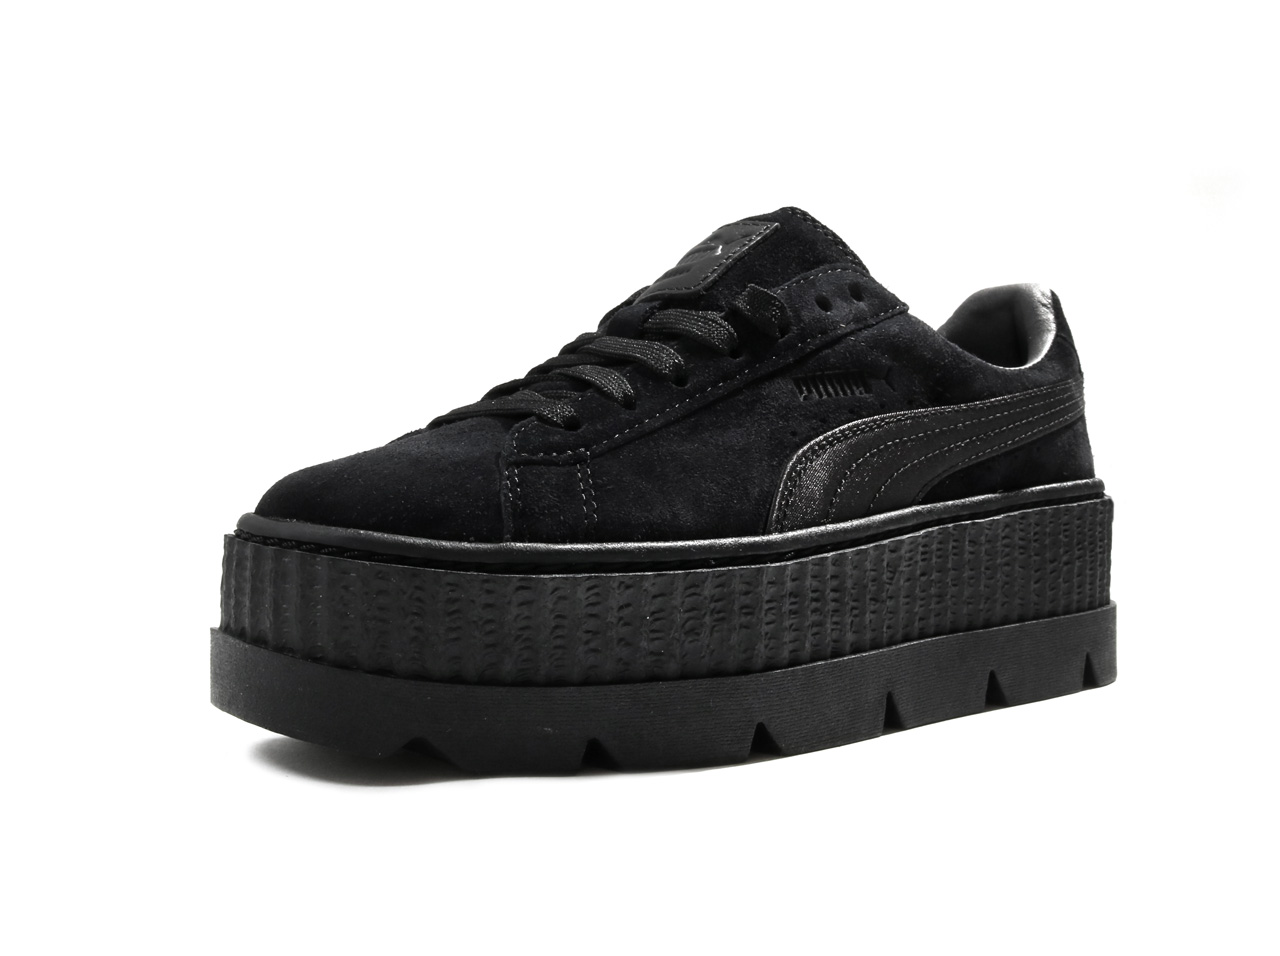 puma_fenty_cleated_creepersuede_wns_366268_04